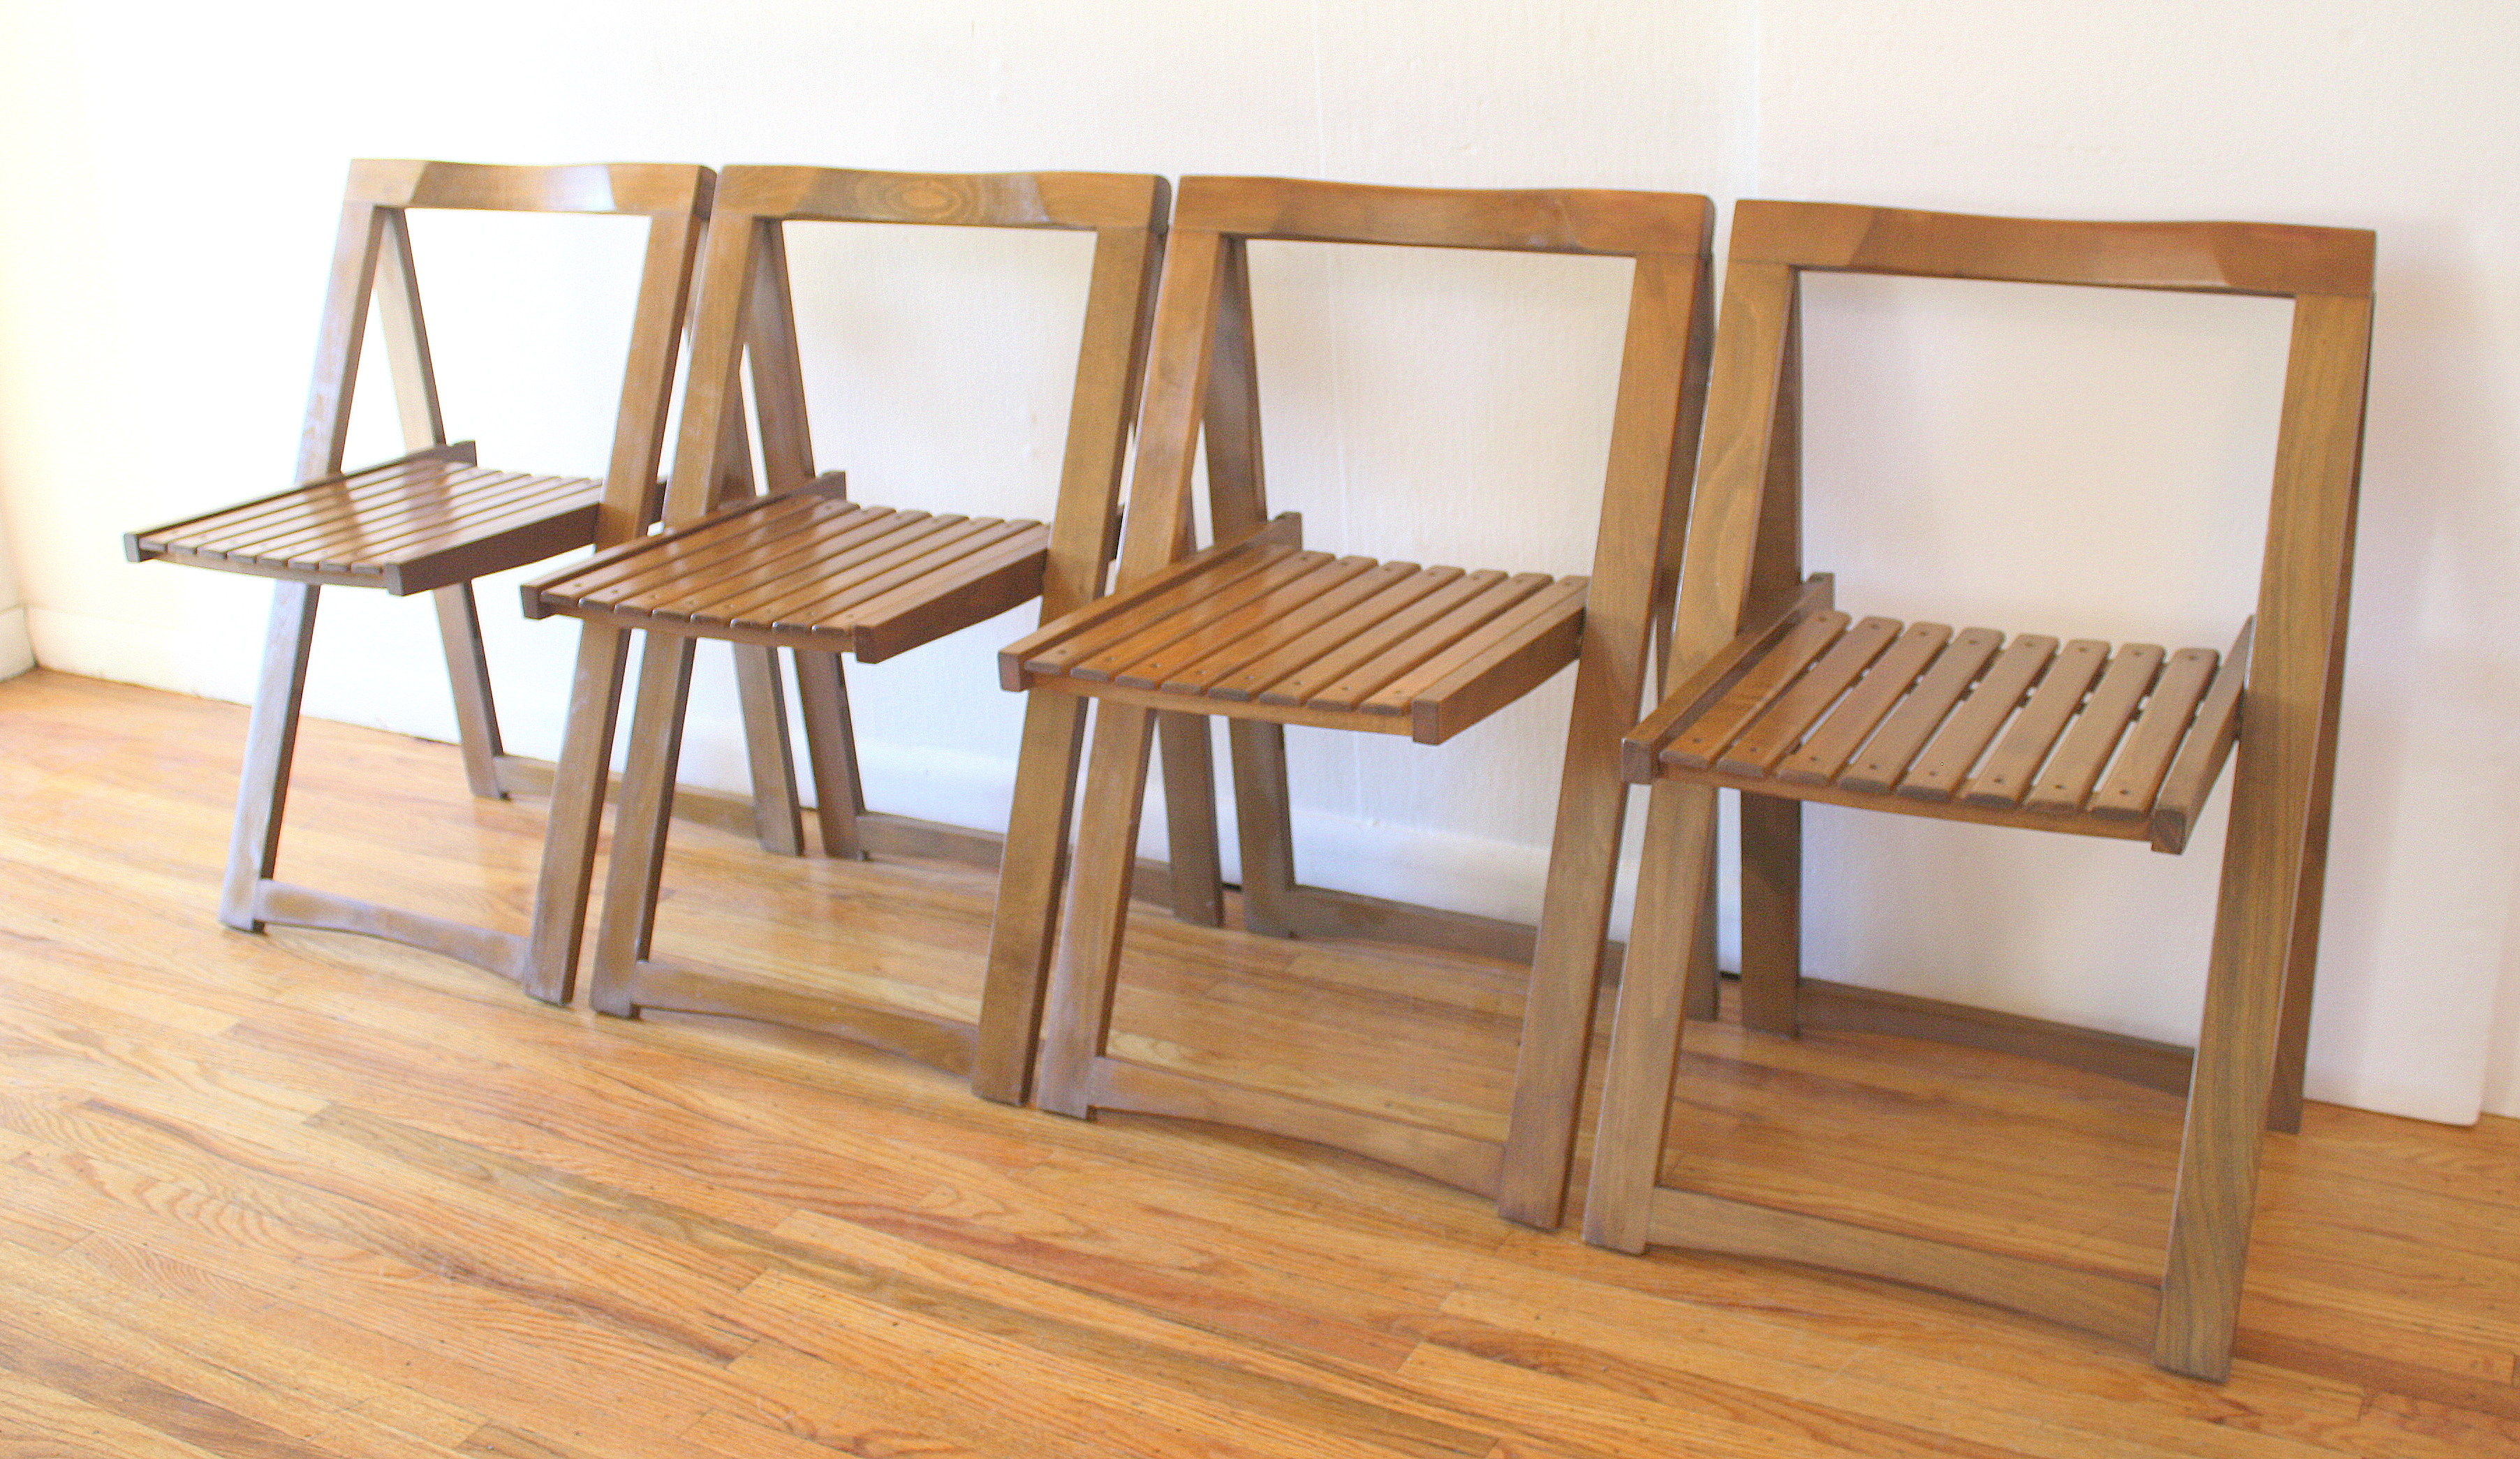 Mid century modern gateleg dining table chairs picked vintage - Gateleg table with folding chairs ...